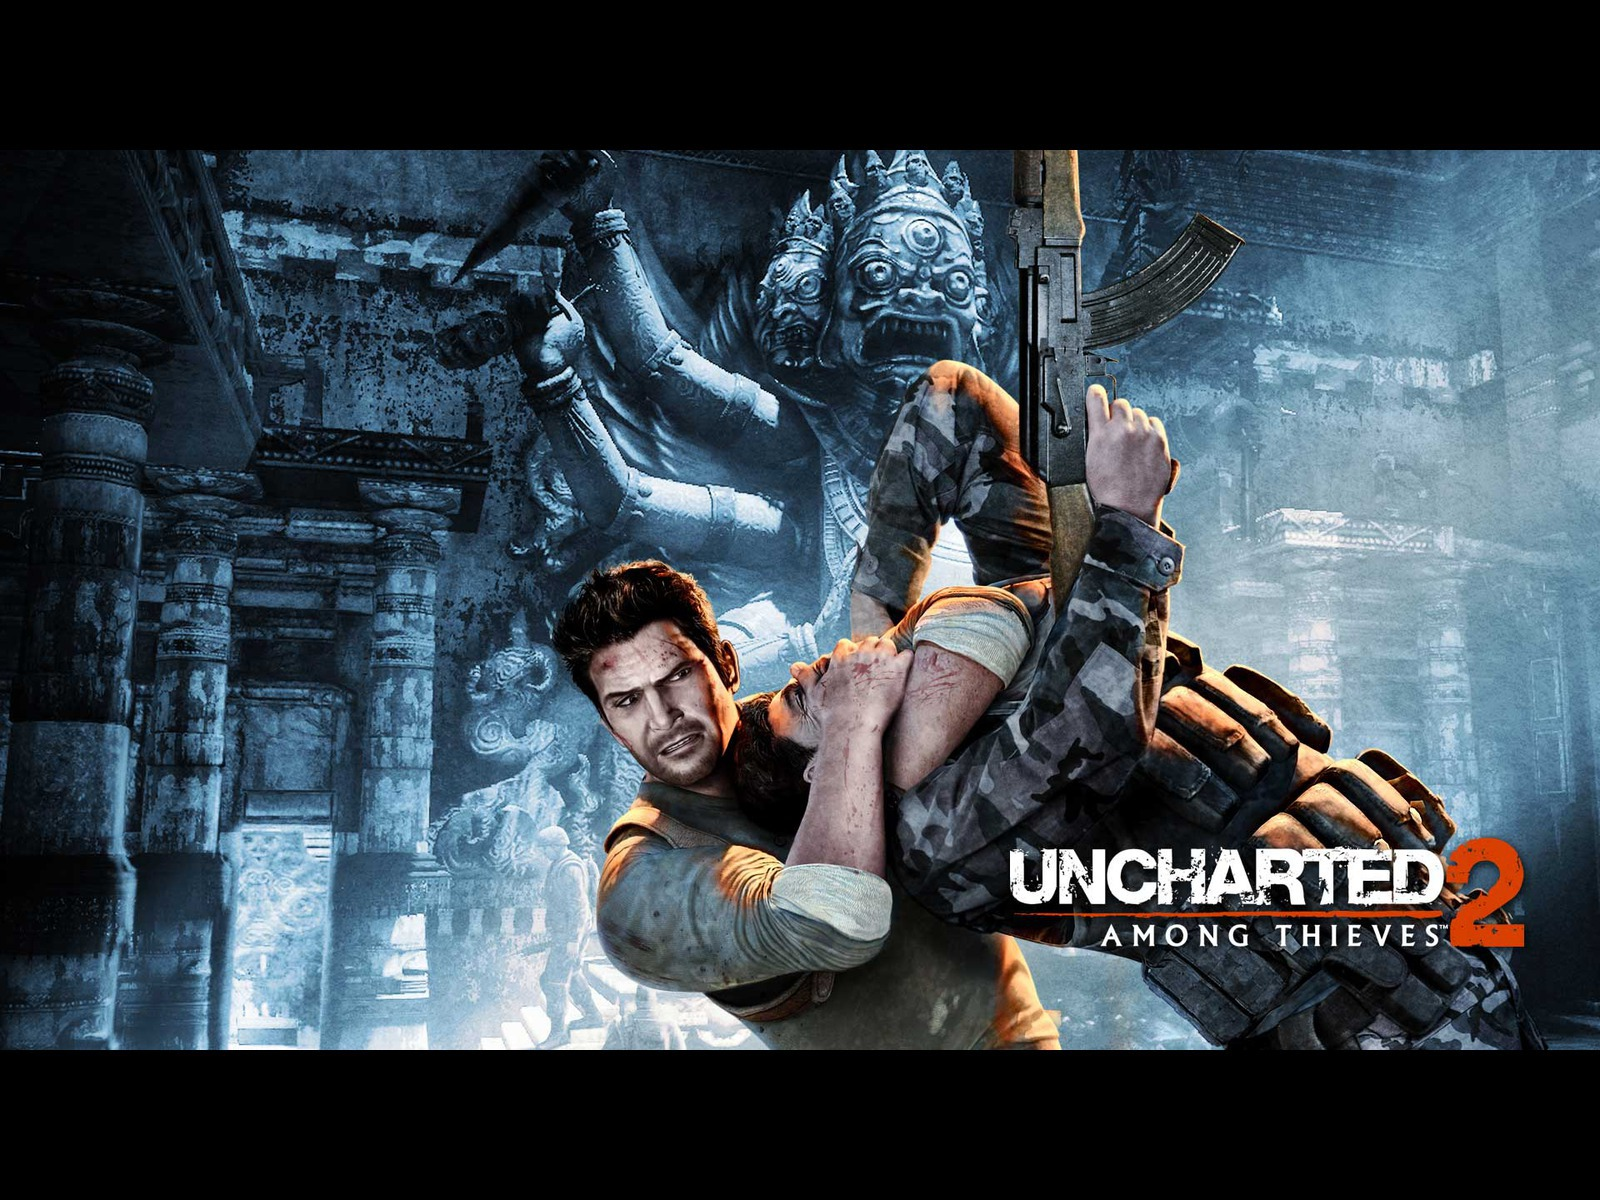 Uncharted 2 Among Thieves Wallpapers